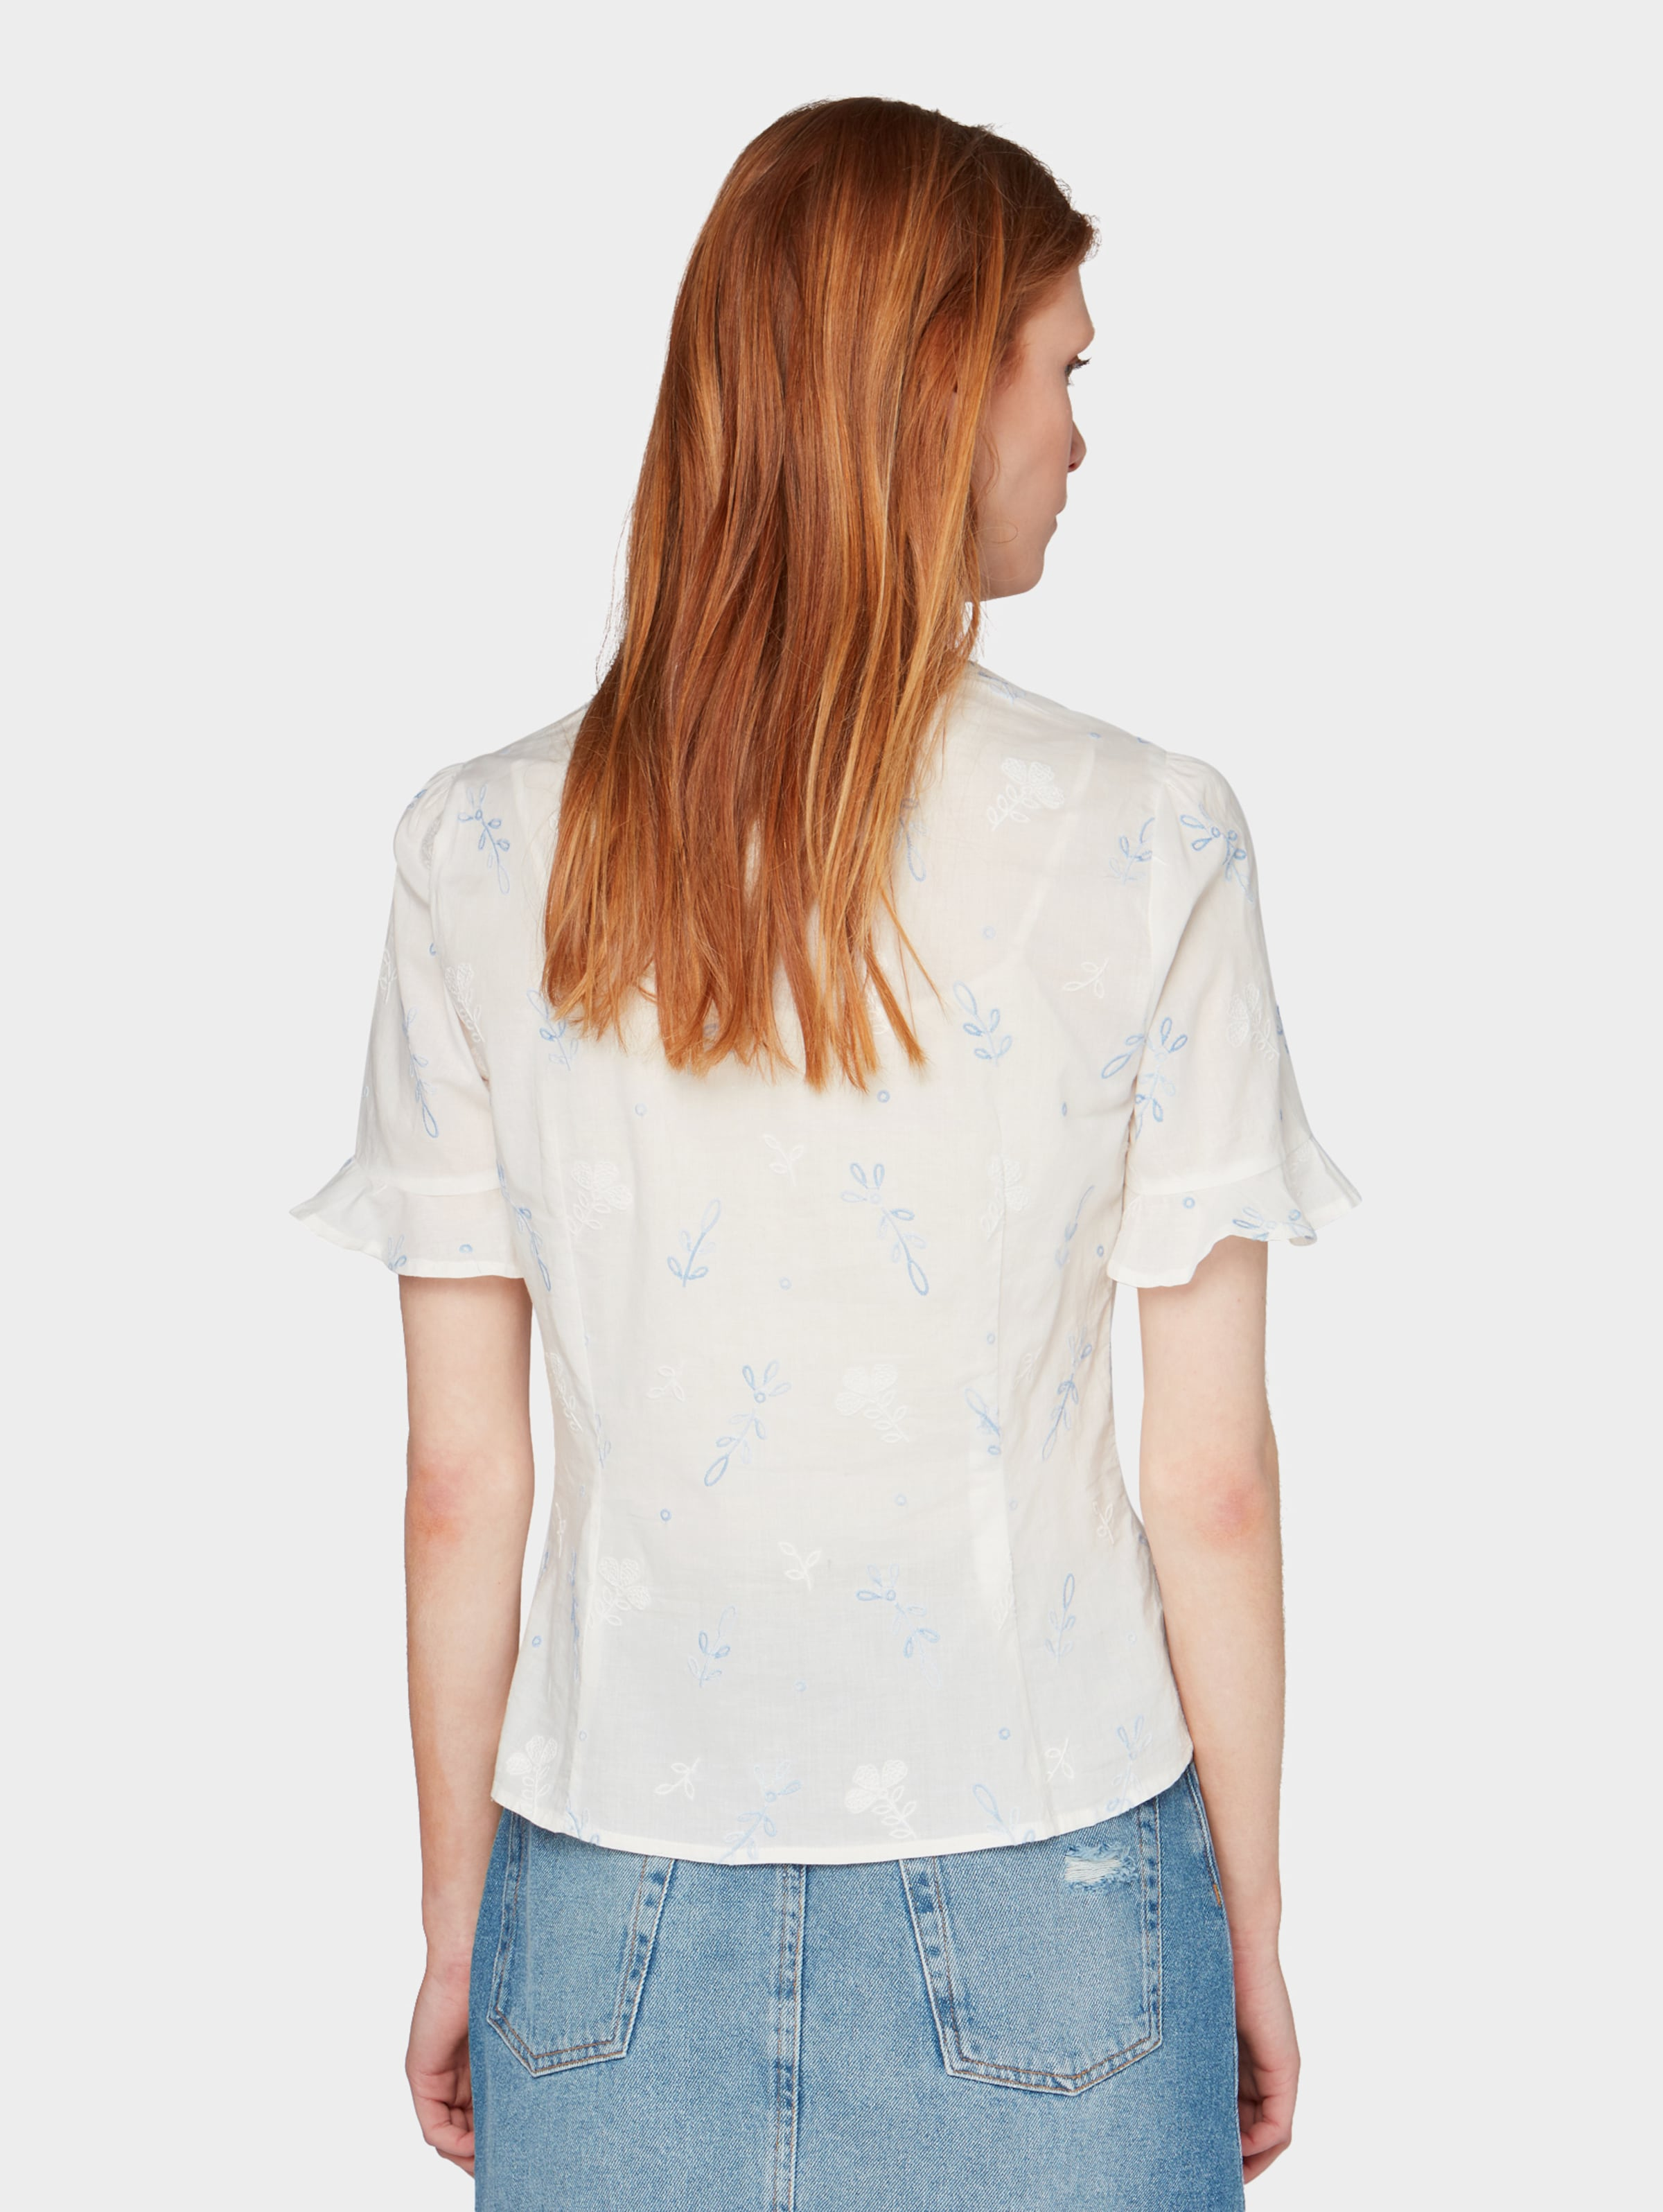 Denim Bluse In Offwhite Tom Tailor WEHID29